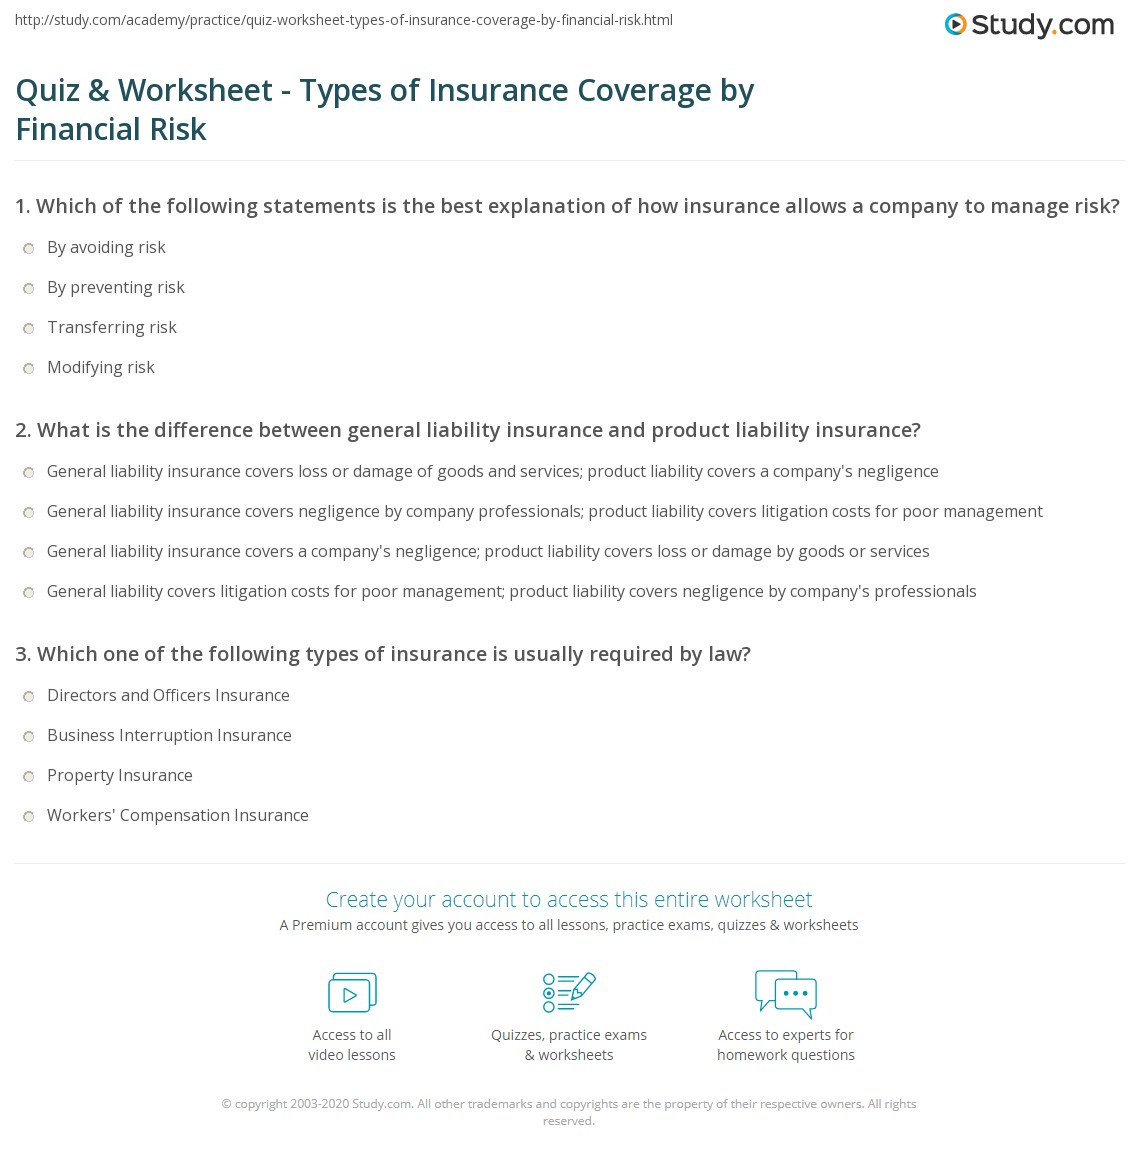 Worksheet Business Interruption Worksheet quiz worksheet types of insurance coverage by financial risk print for various worksheet